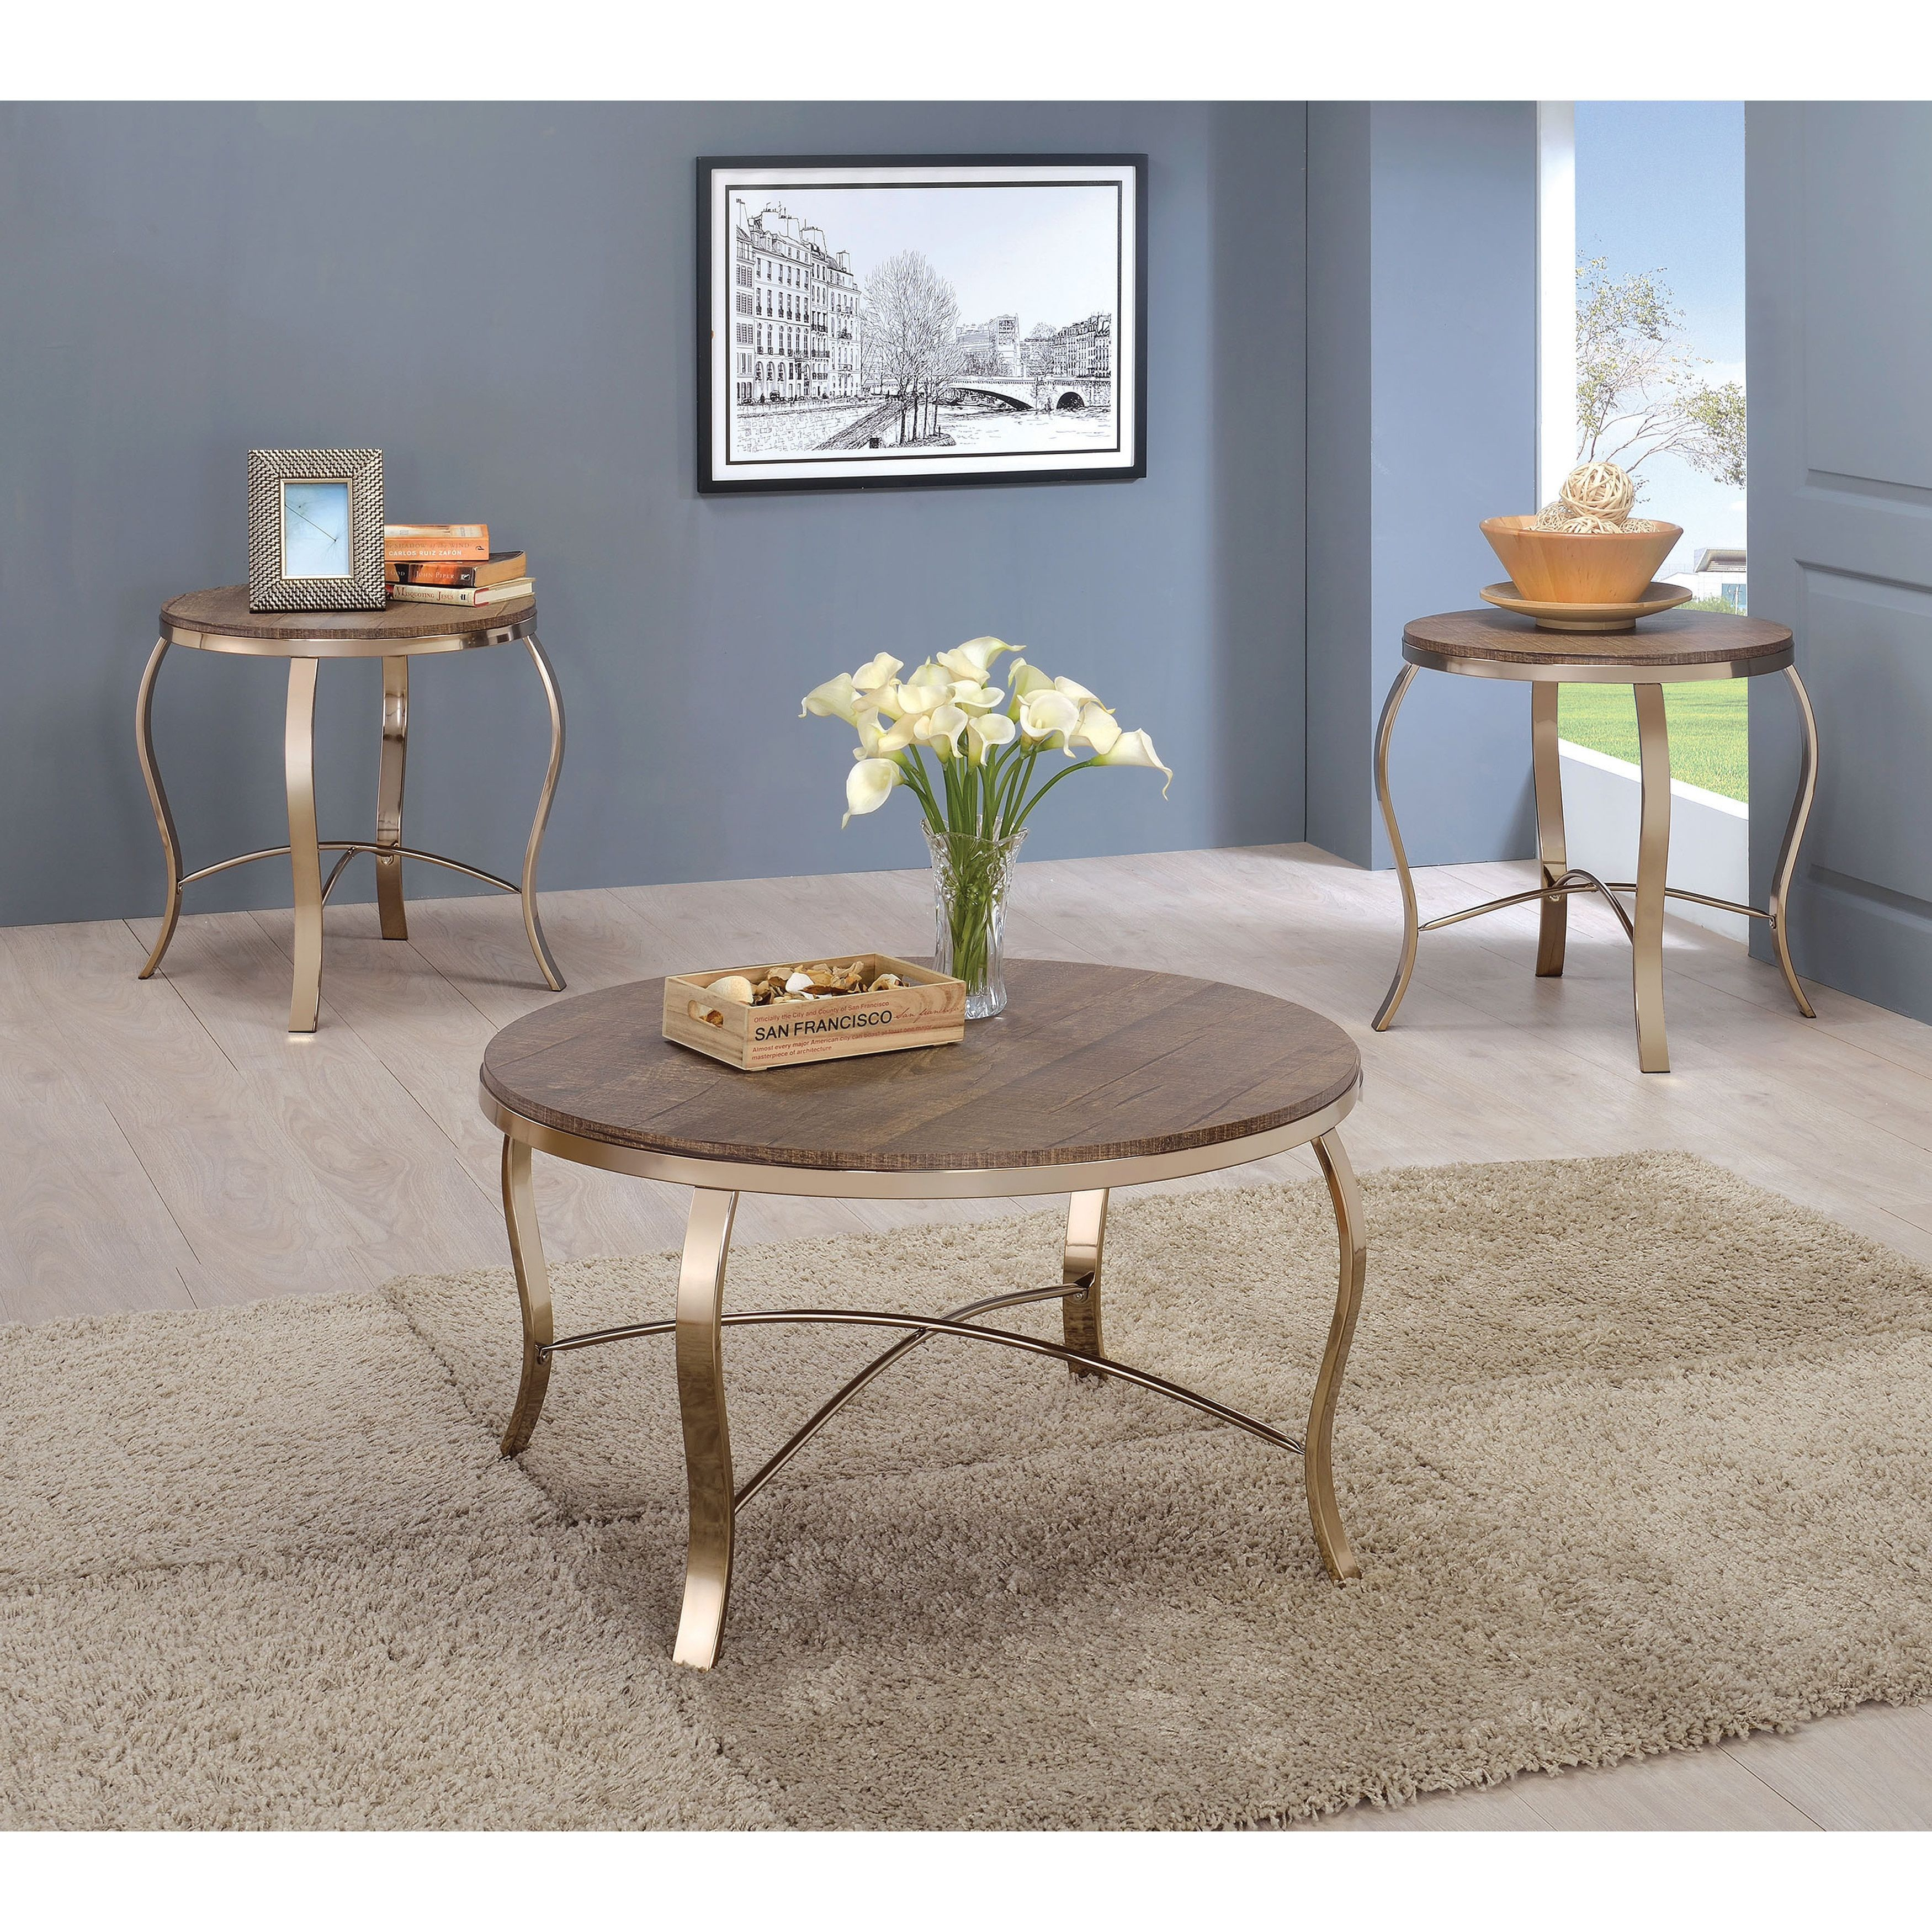 furniture america tayla contemporary piece glam champagne round accent table set rustic oak brown small metal outdoor side whole tablecloths monarch mirrored lamp with usb port